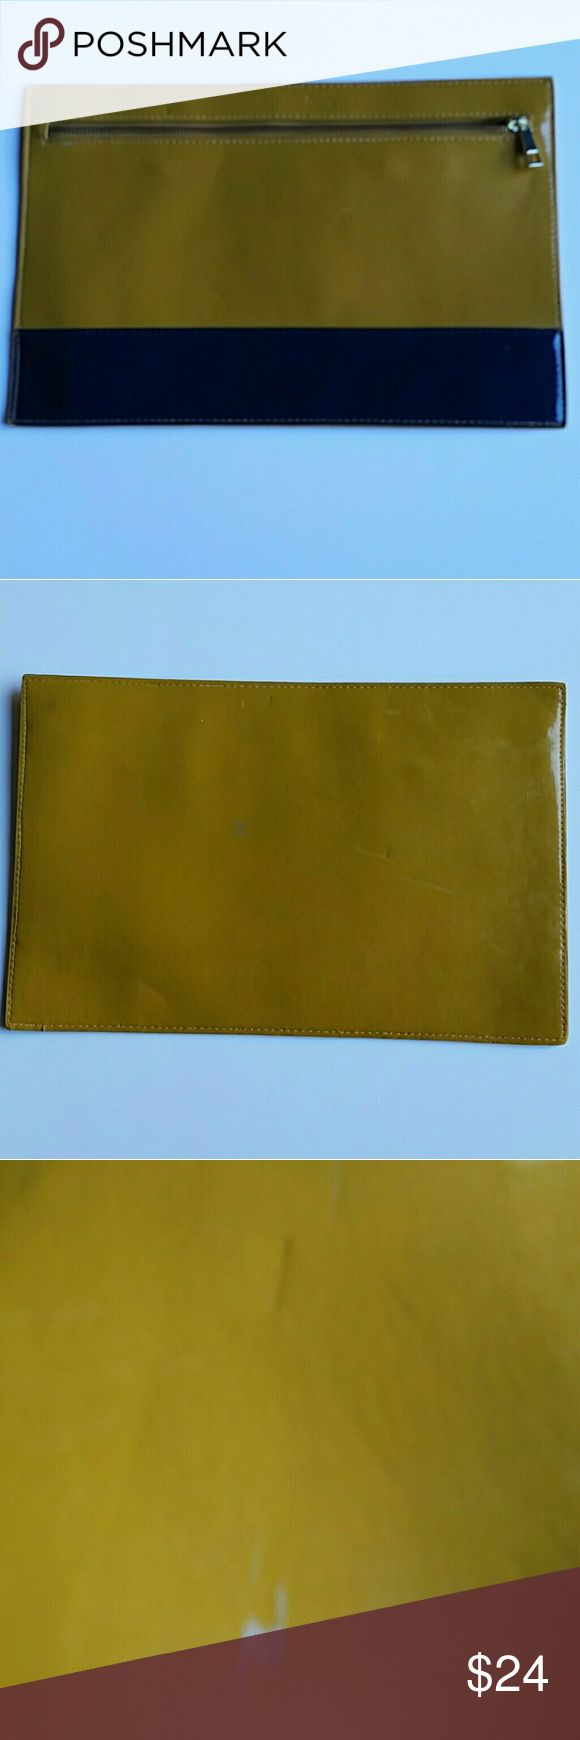 Asos Yellow and Royal blue  Clutch Bag . Cute and right on trend yellow and royal blue  clutch, perfect for any occasion. ASOS Bags Clutches & Wristlets